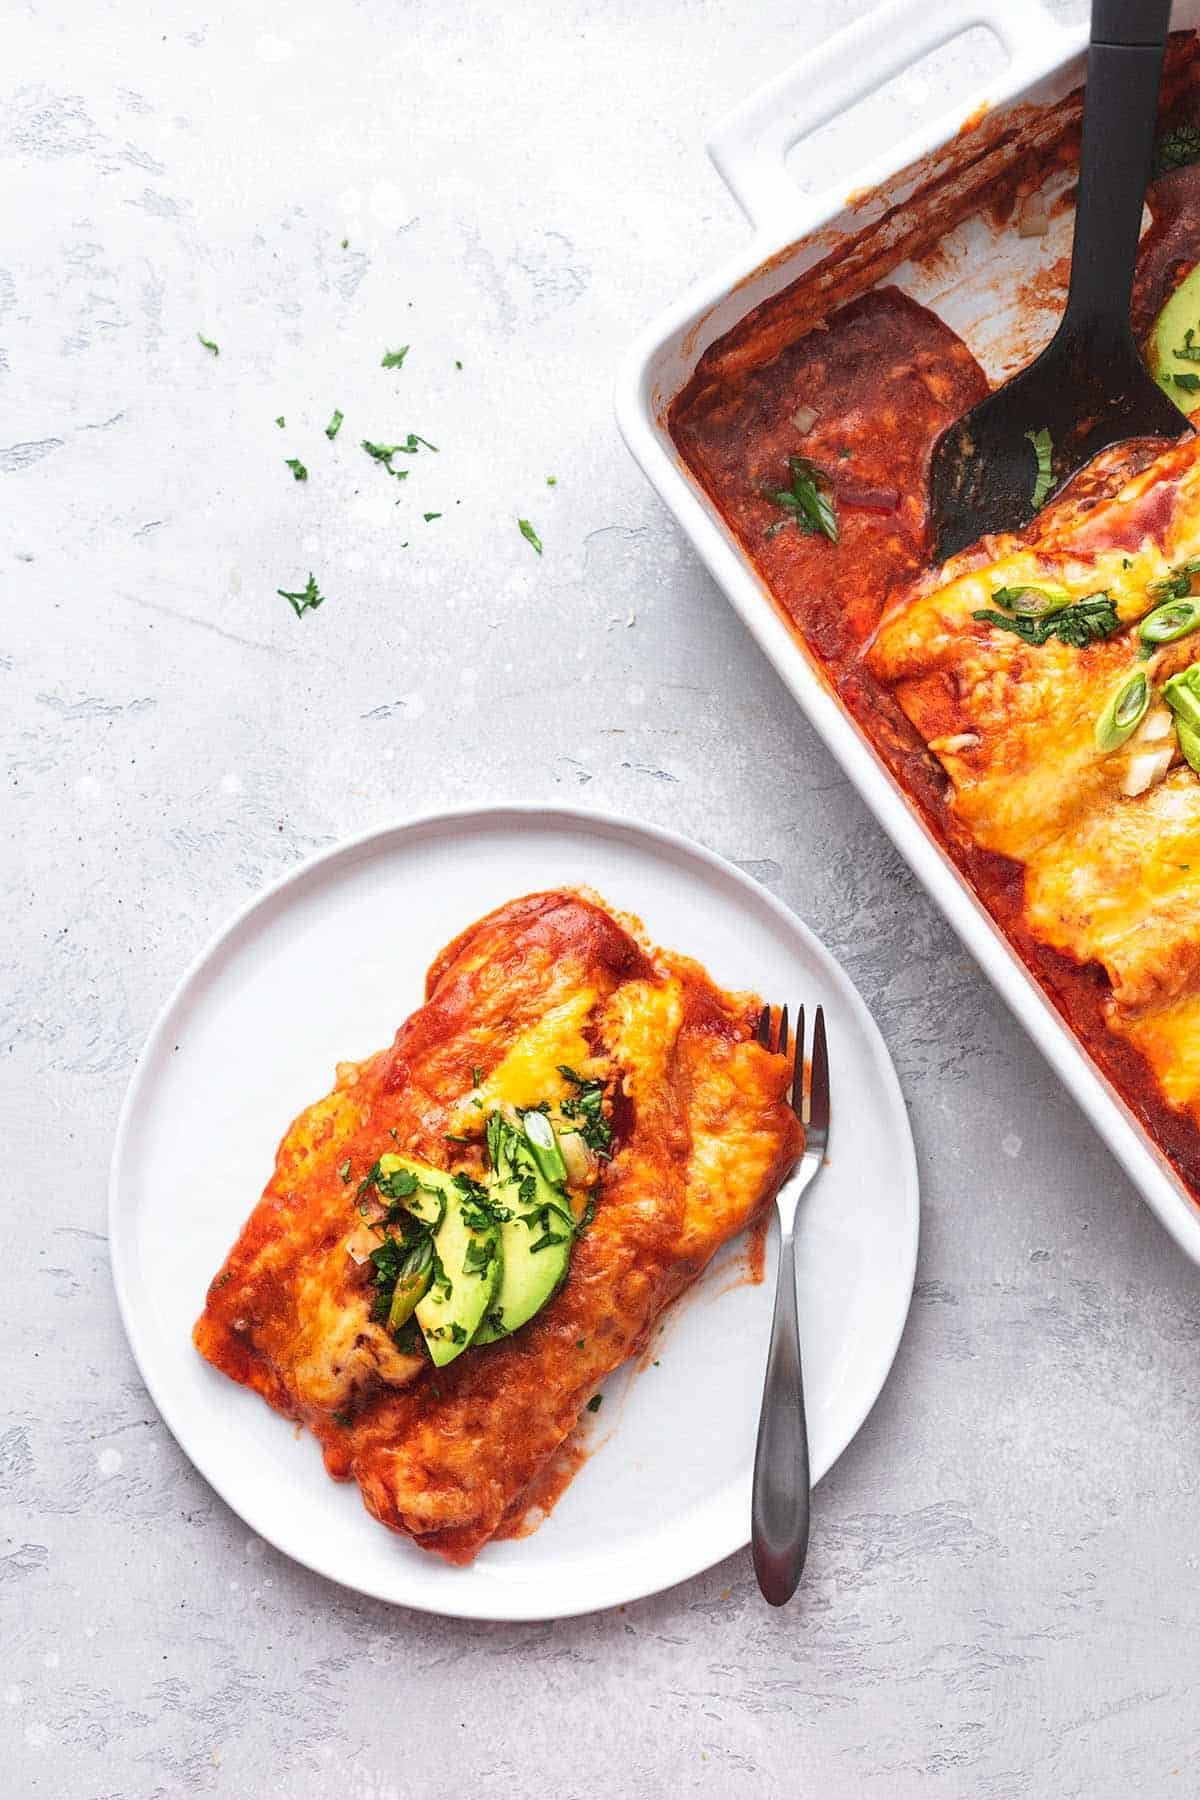 enchiladas on a plate next to a pan of enchiladas